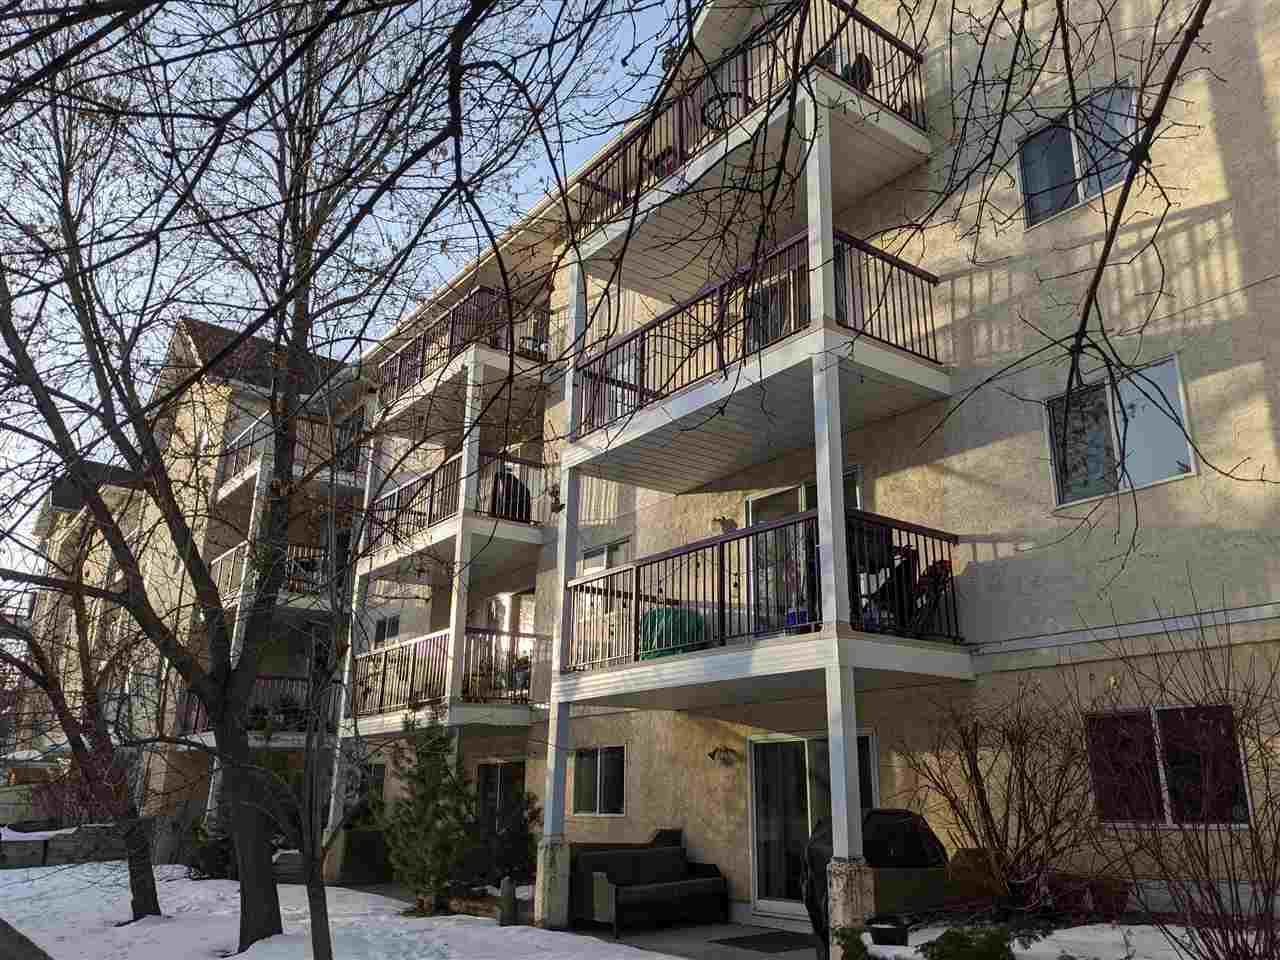 #209 10636 120 ST NW, Edmonton, Alberta, Canada T5H4L5, 2 Bedrooms Bedrooms, Register to View ,1 BathroomBathrooms,Condo,For Sale,E4224022